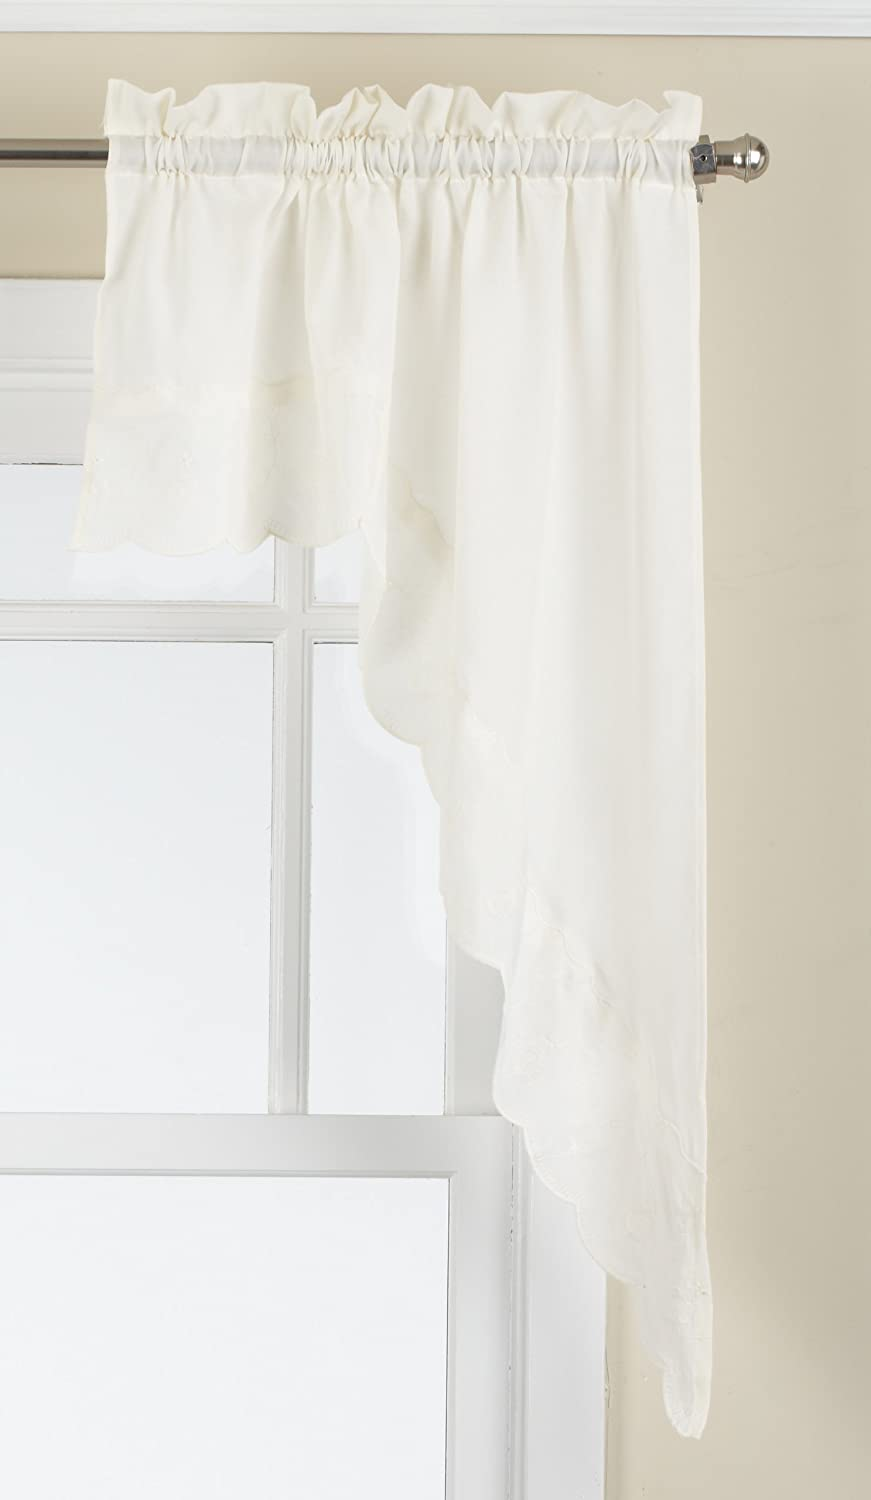 Lorraine Home Fashions Candlewick Tailored Valance, 60 by 12-Inch, Cream Lorraine Home Fashions (Home) 00223-V-00051